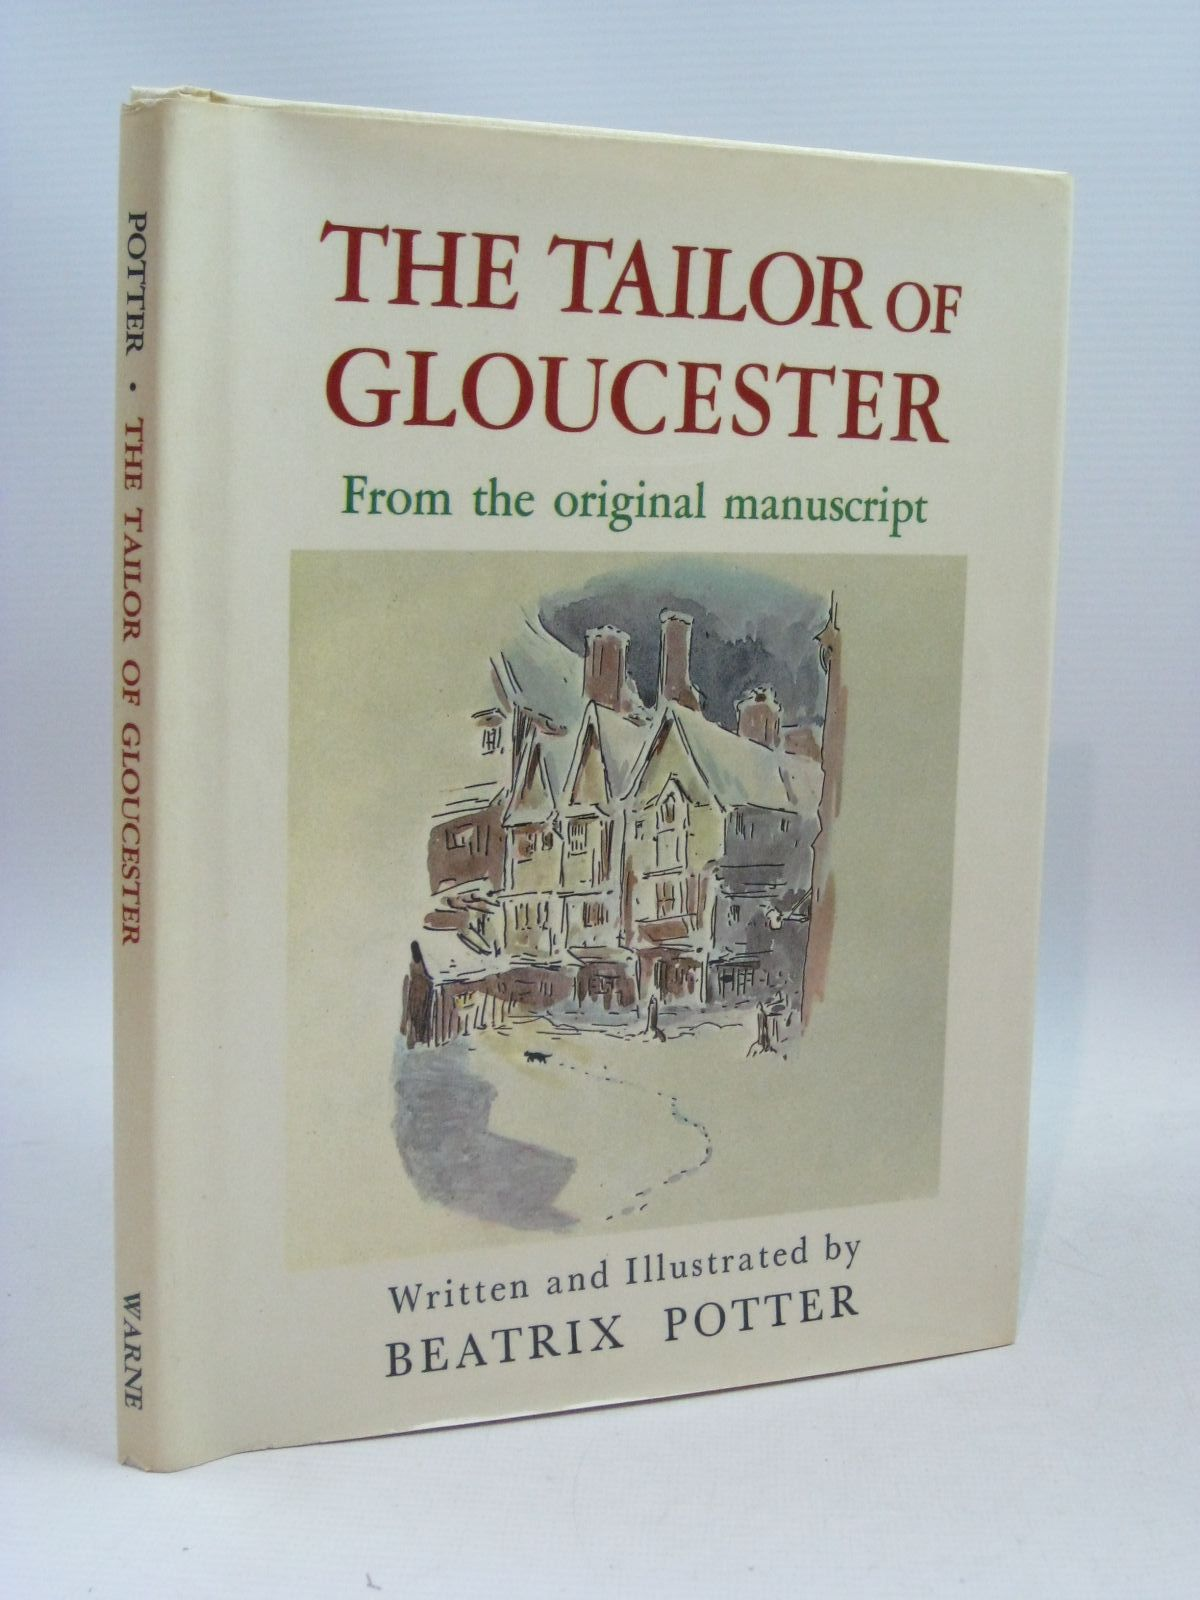 Photo of THE TAILOR OF GLOUCESTER FROM THE ORIGINAL MANUSCRIPT written by Potter, Beatrix illustrated by Potter, Beatrix published by Frederick Warne & Co Ltd. (STOCK CODE: 1315683)  for sale by Stella & Rose's Books